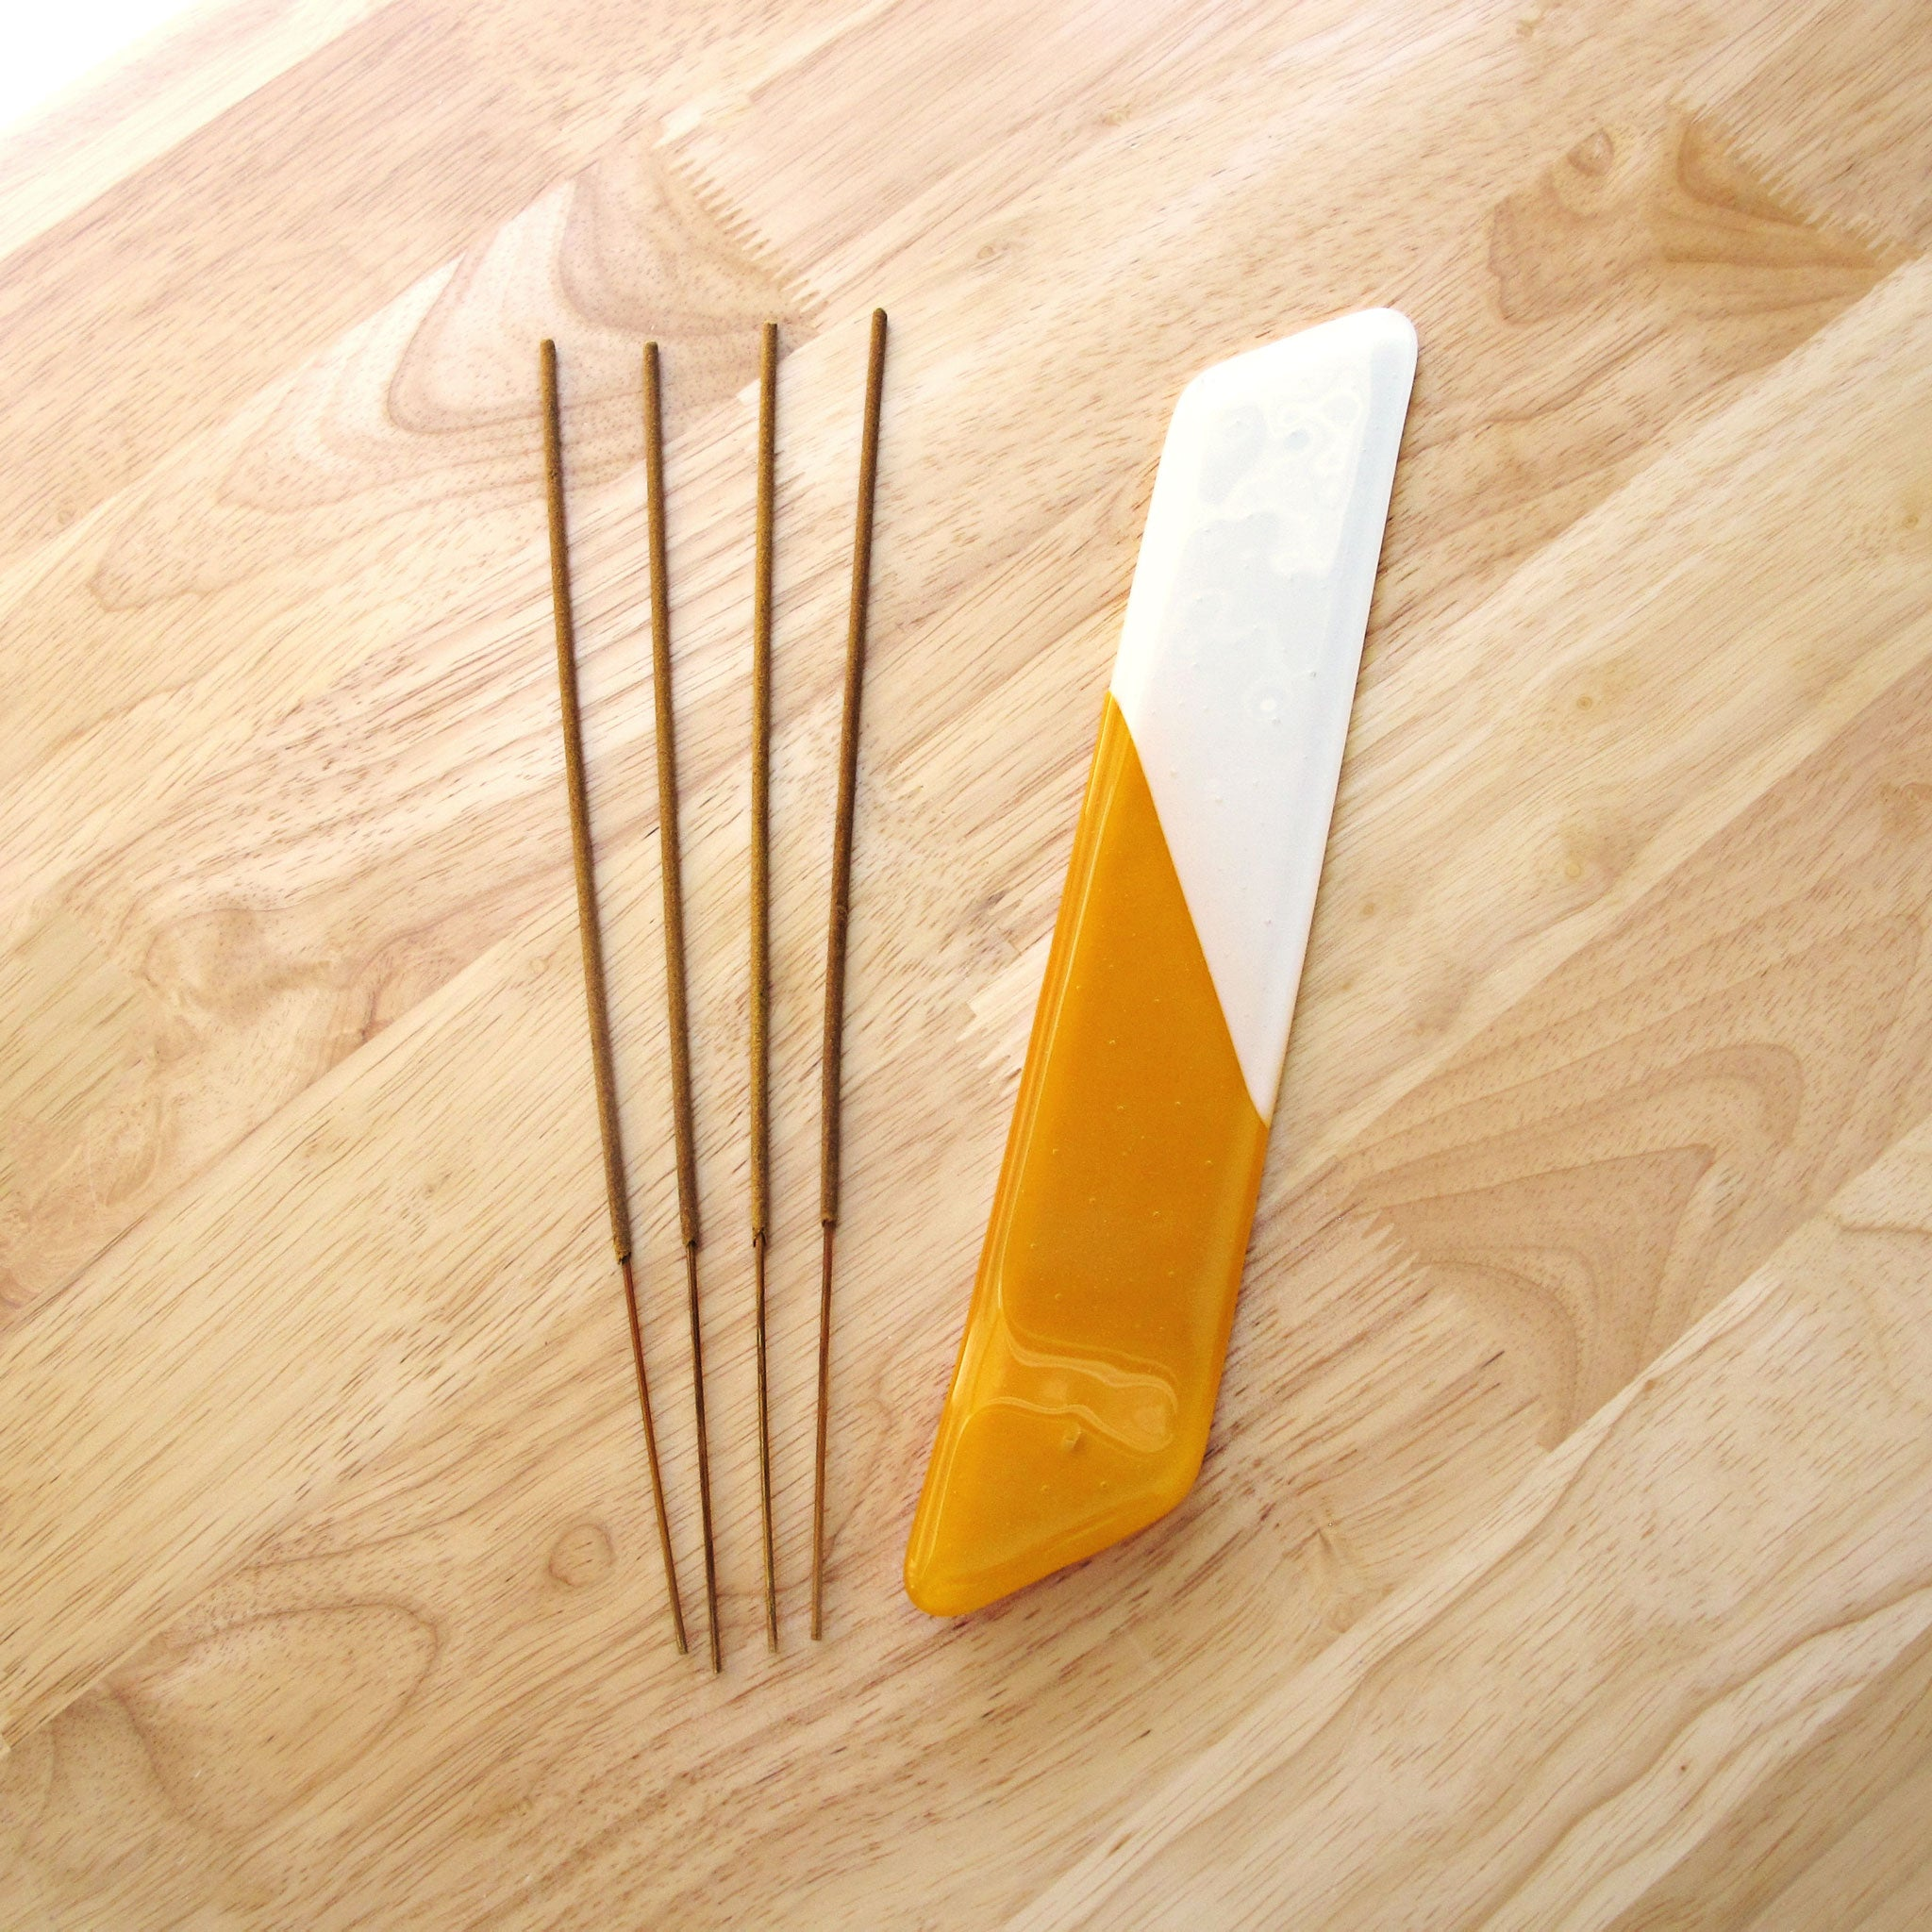 Katie Kismet yellow and white incense burner with four sticks of incense (flat view)